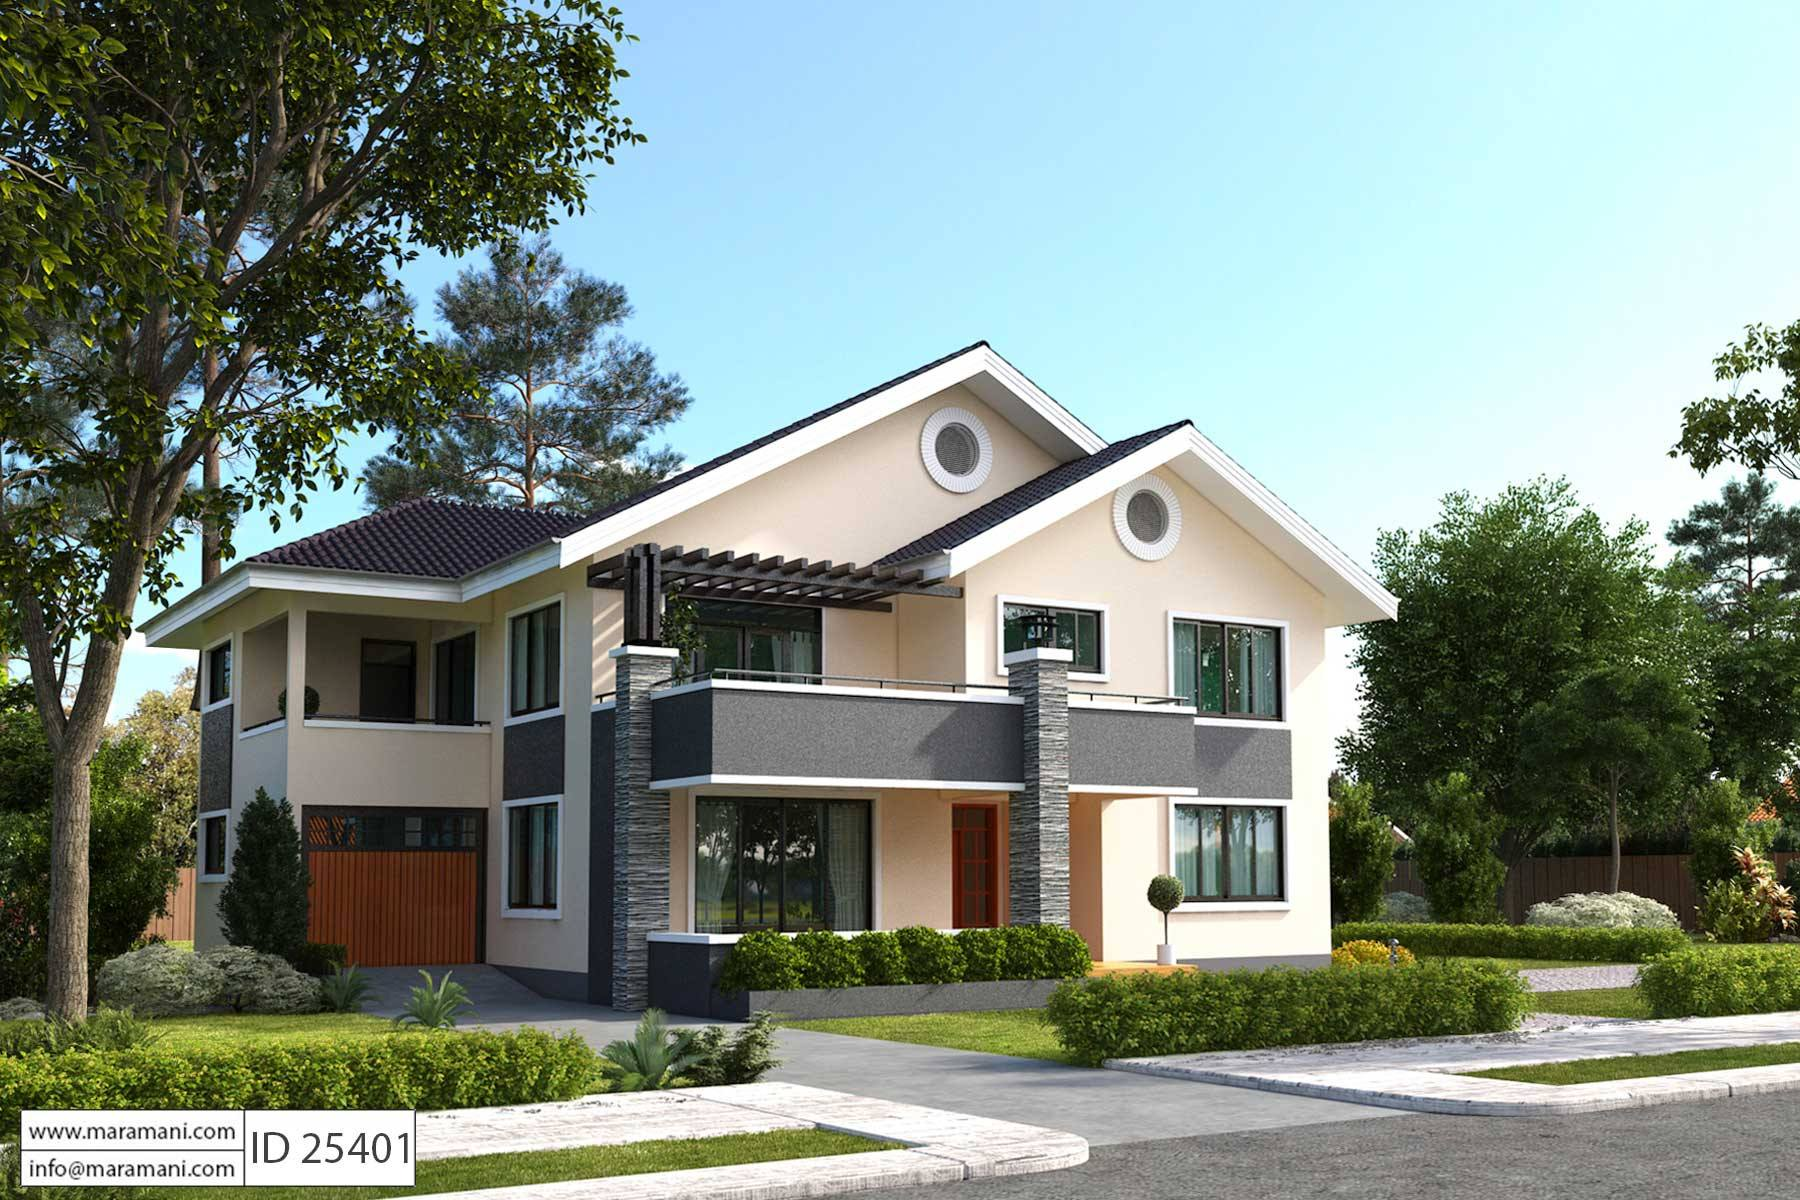 5 bedroom house plan id 25401 floor plans by maramani for 5 bedroom house plan designs